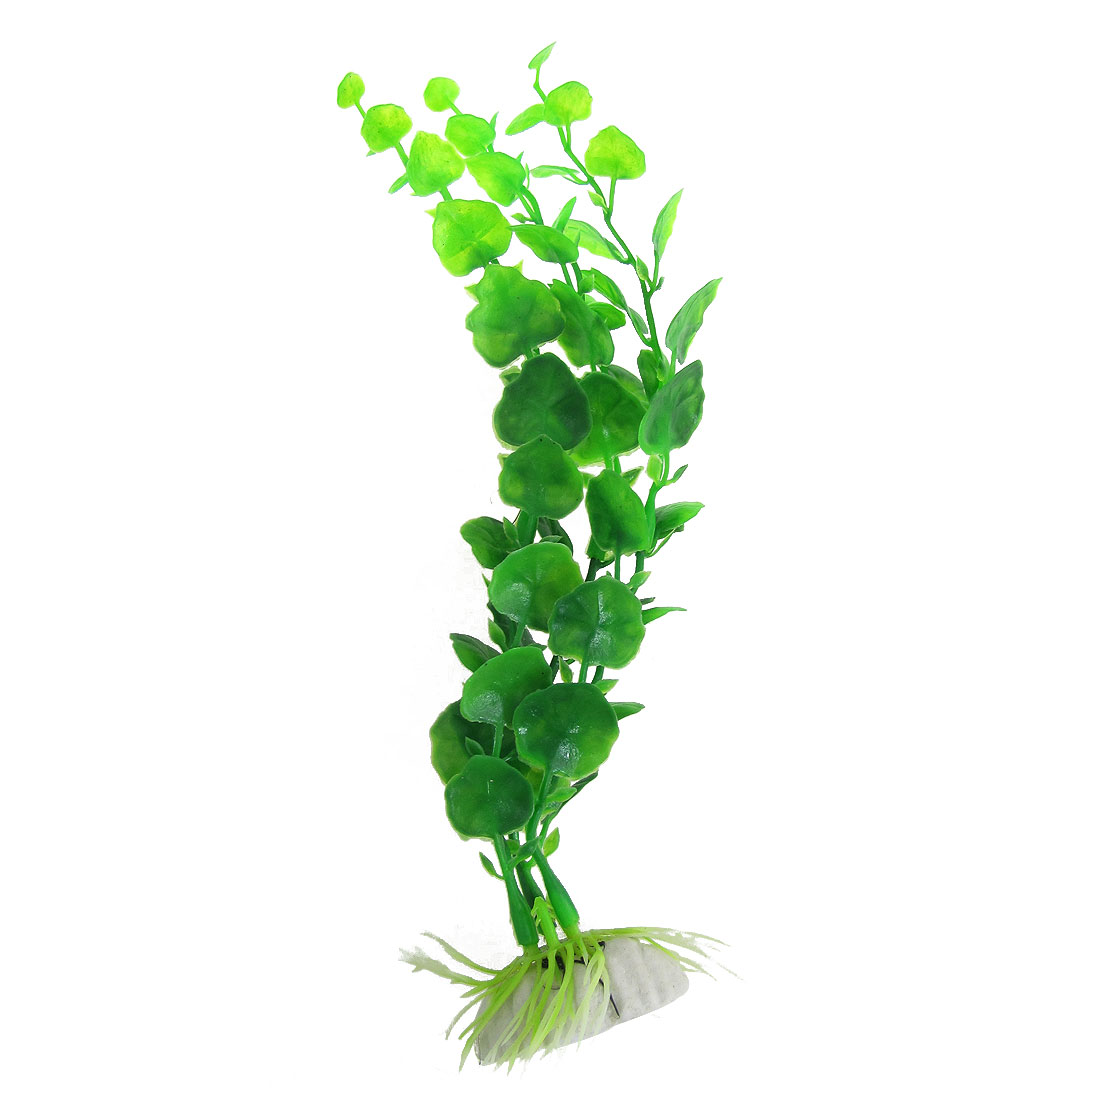 "Fish Tank Green Simulated Plastic Water Plants Ornament 8.7"" High"